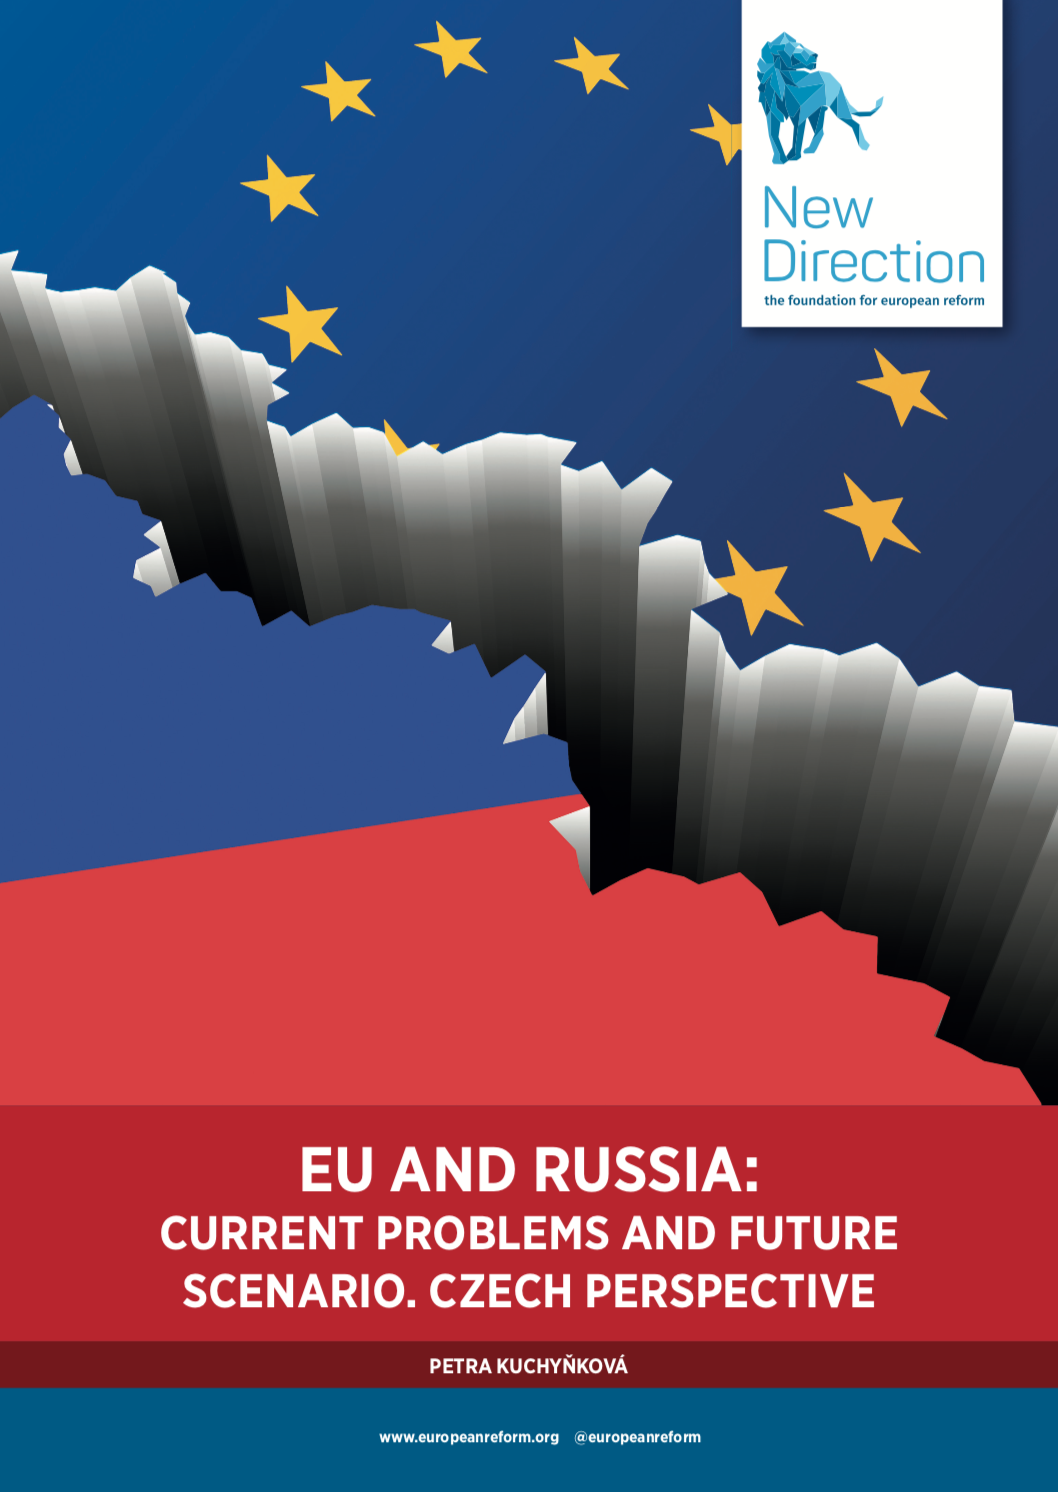 EU AND RUSSIA: CURRENT PROBLEMS AND FUTURE SCENARIOS. A CZECH PERSPECTIVE